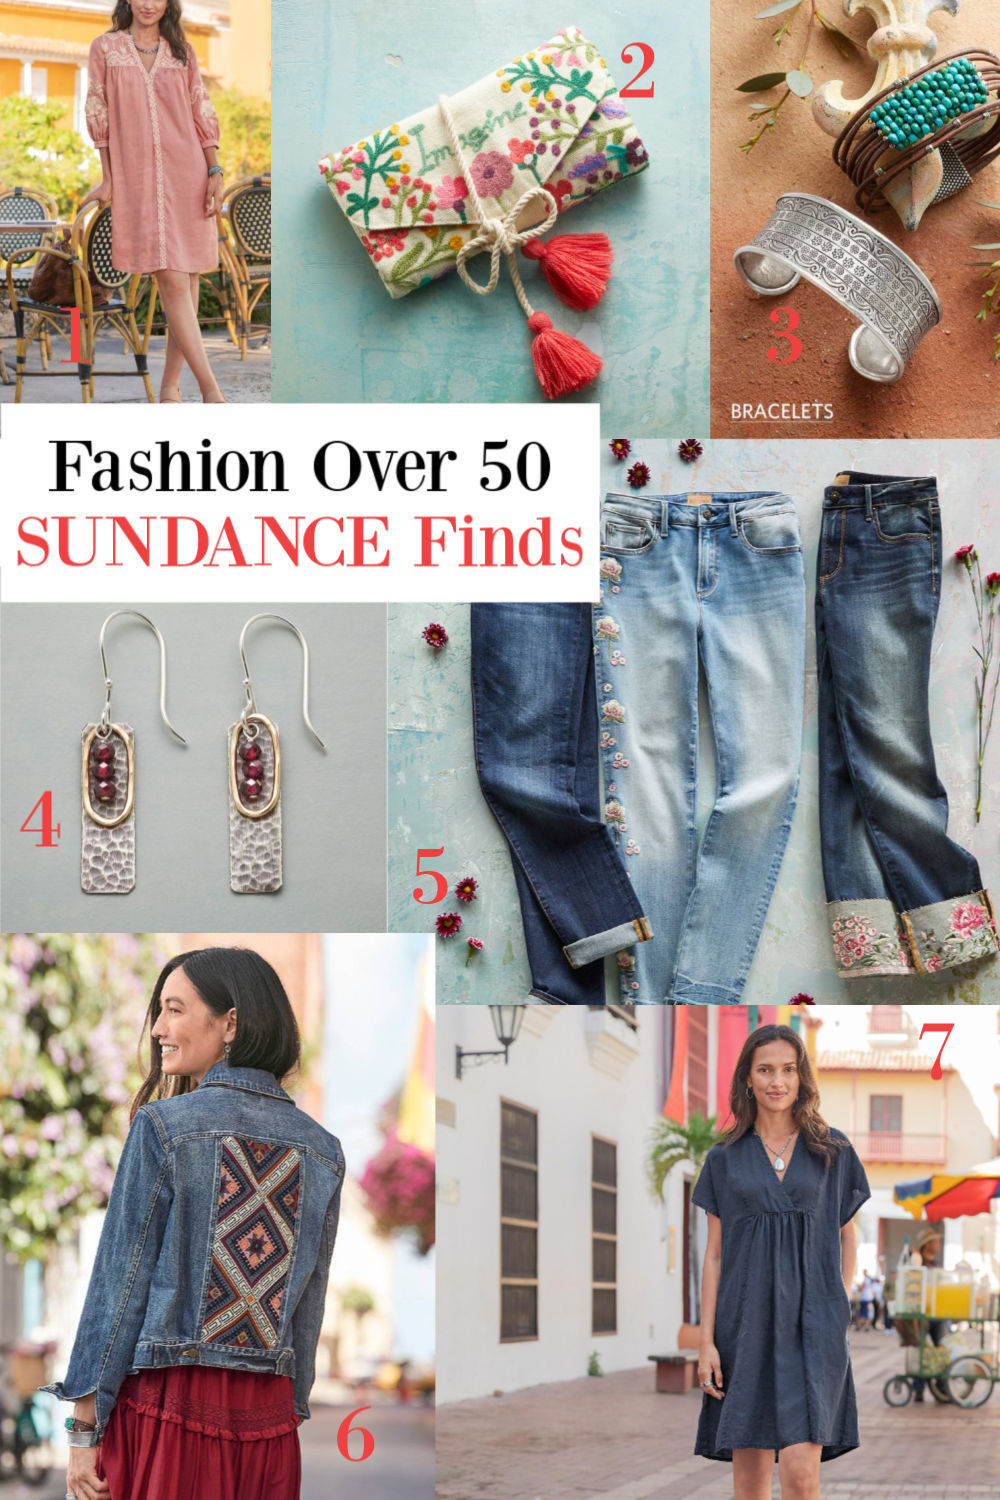 Fashion Over 50 finds from Sundance on Hello Lovely Studio. #fashionover50 #clothing #sundancecatalog